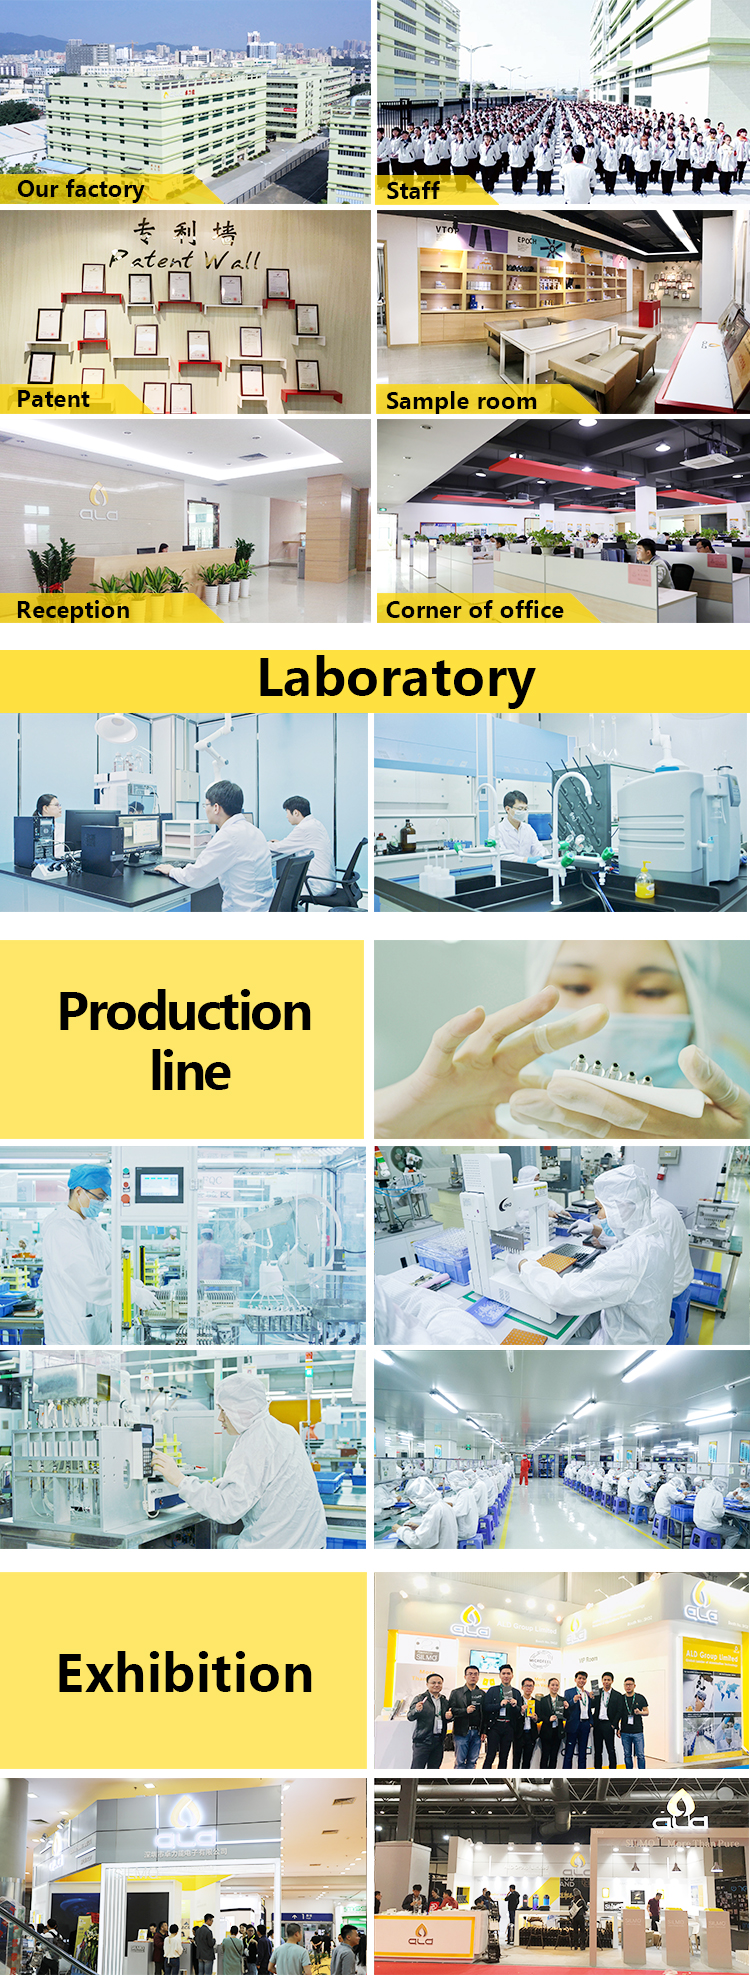 ALD factory introduction